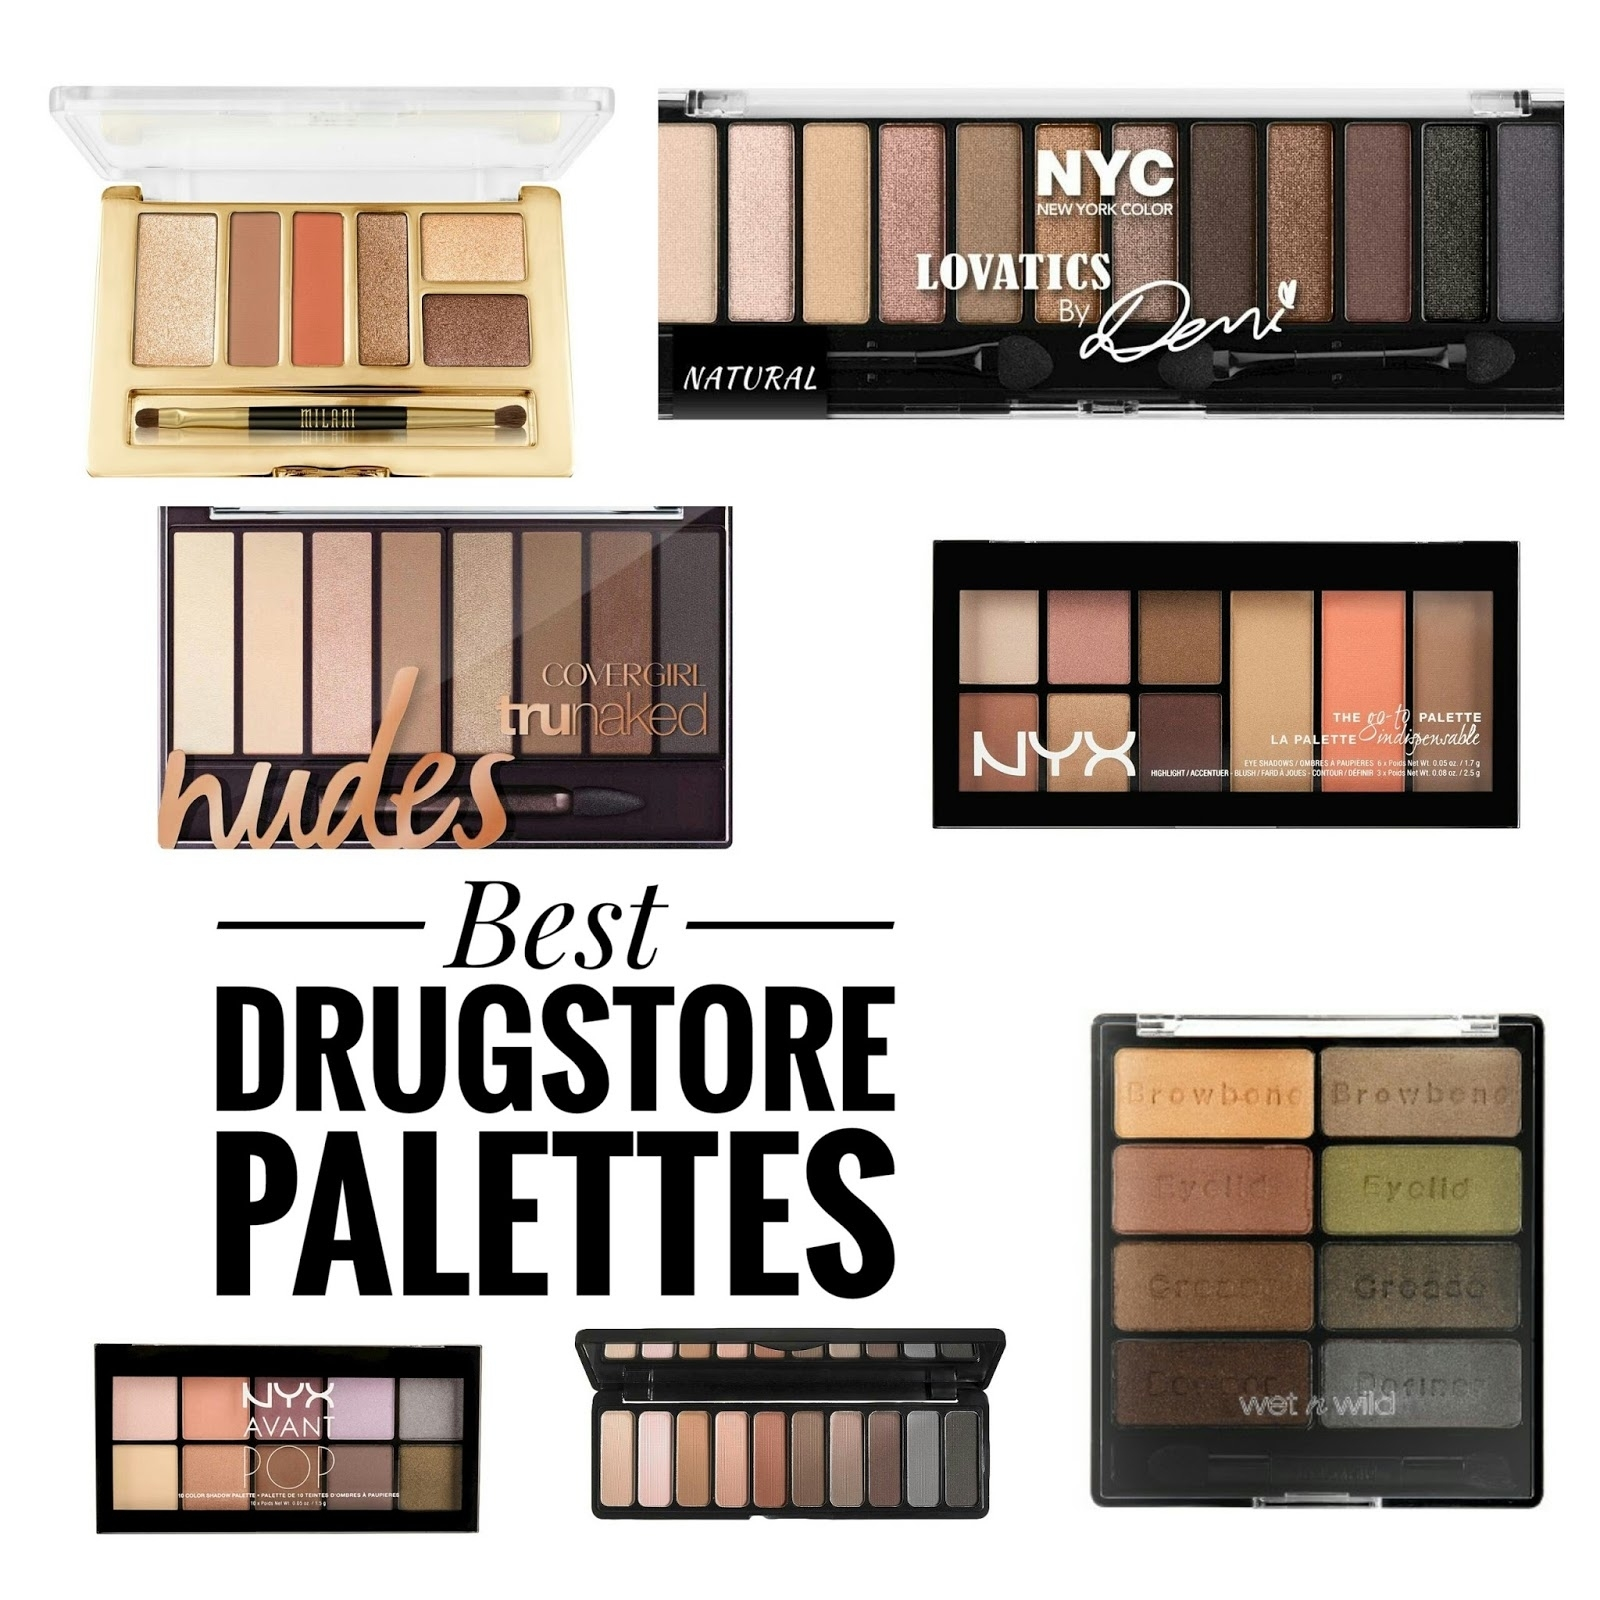 best drugstore eyeshadow palettes for green eyes - wavy haircut